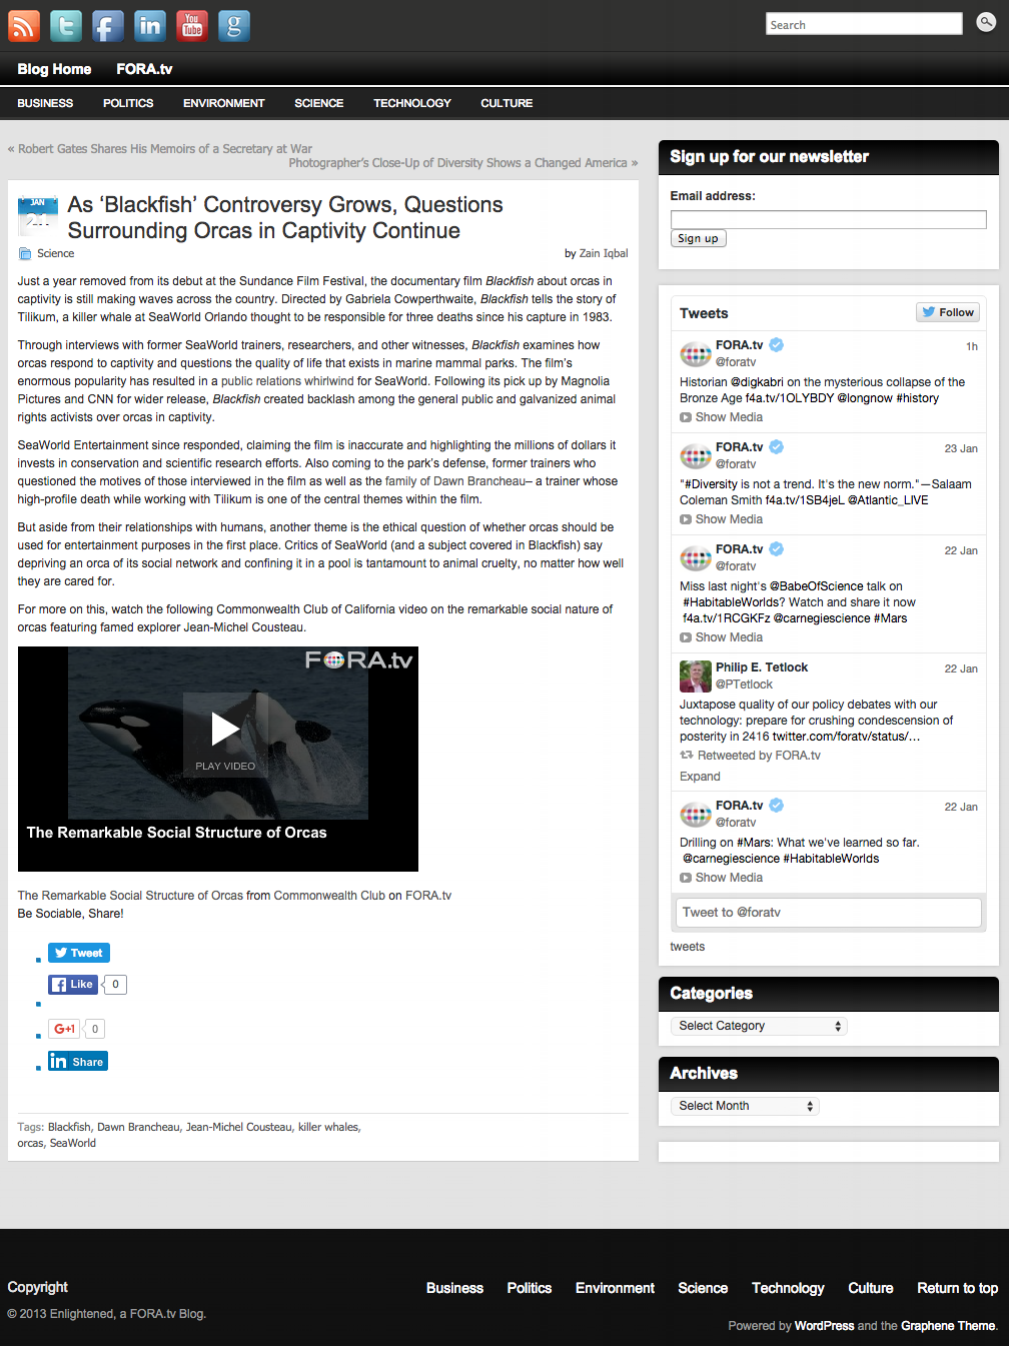 screencapture-enarchive-fora-tv-2014-01-as-blackfish-controversy-grows-questions-surrounding-orcas-in-captivity-continue.png